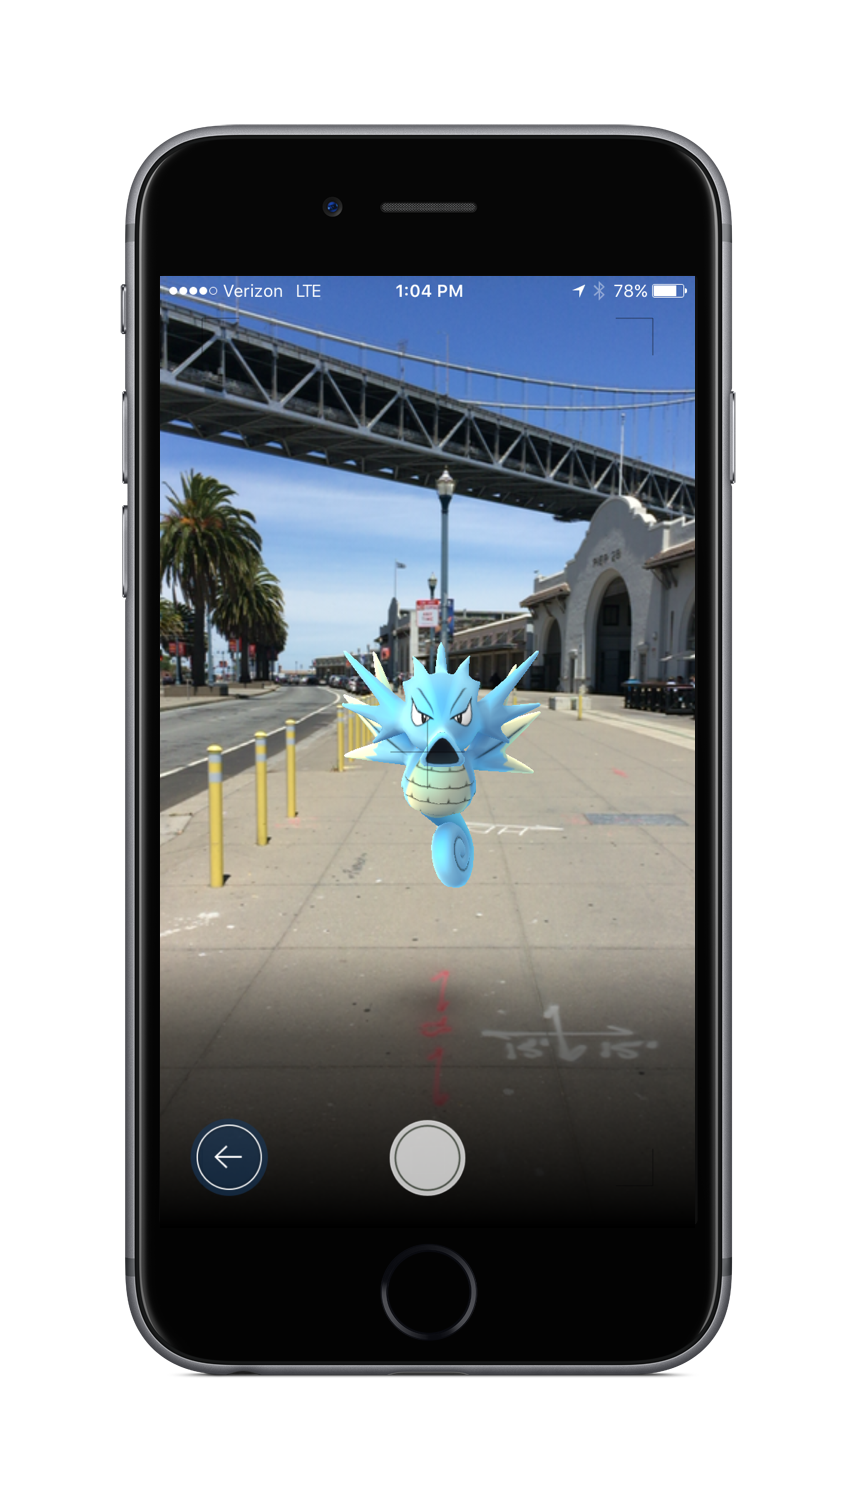 Pokémon GO Camera Screenshot